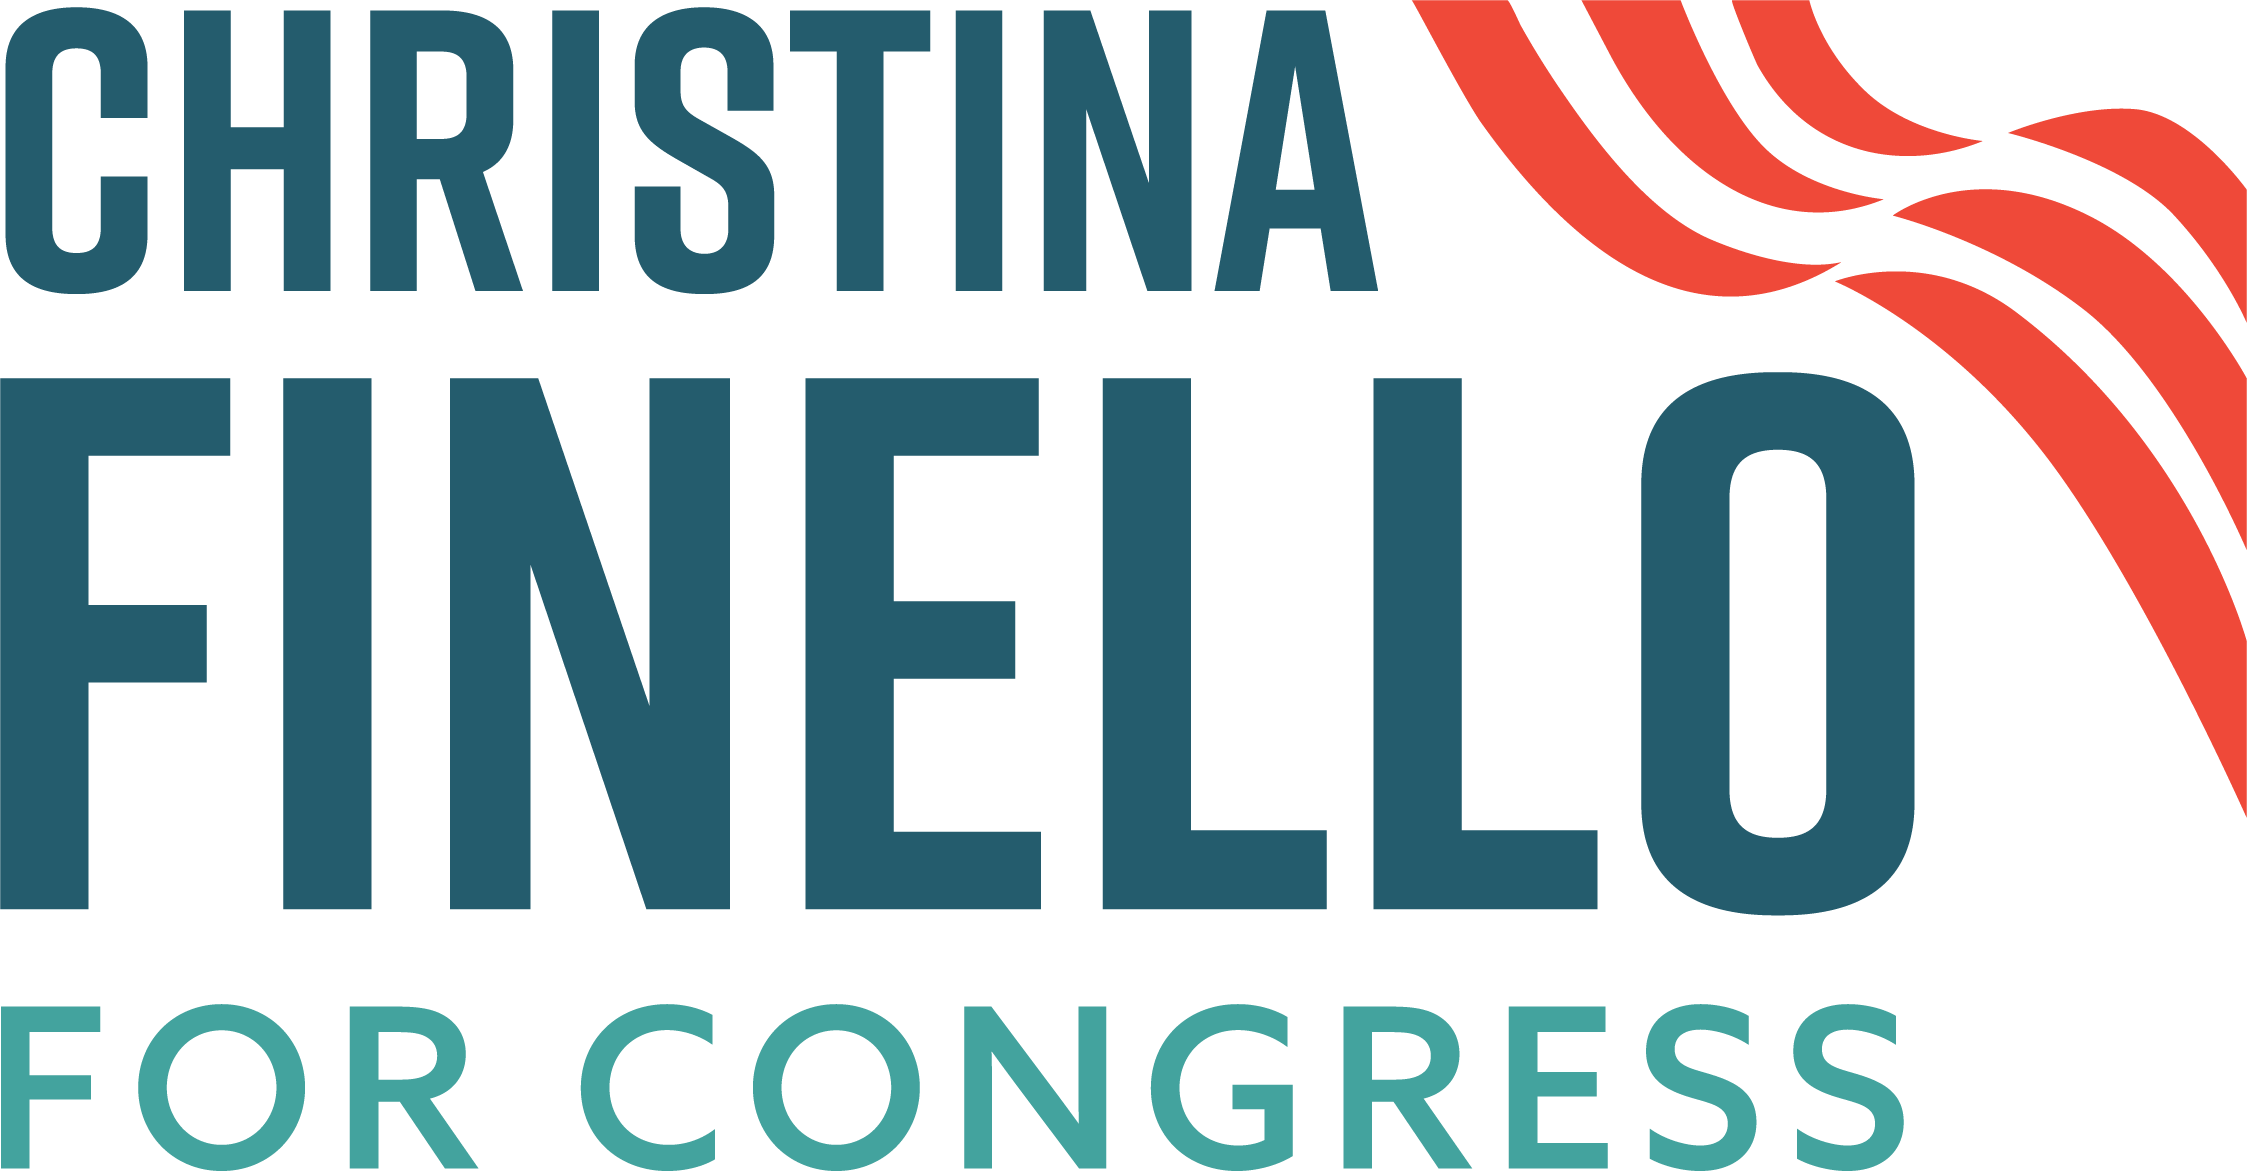 Christina Finello for Congress